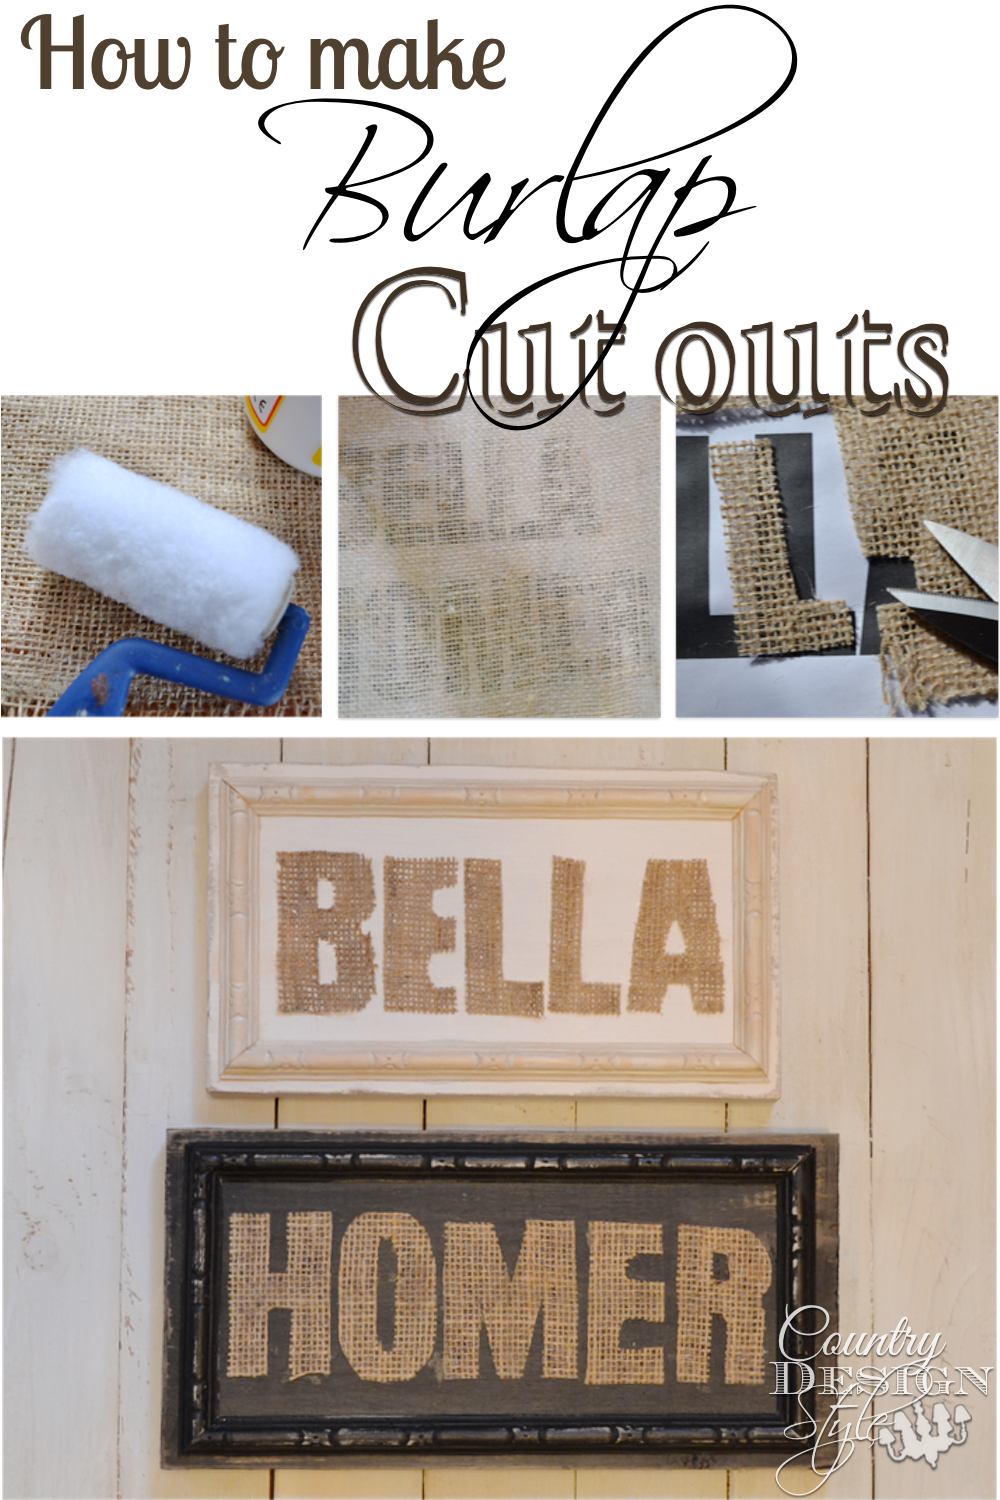 How to make burlap cut outs easy and DIY your own burlap and wood signs.  Country Design Style